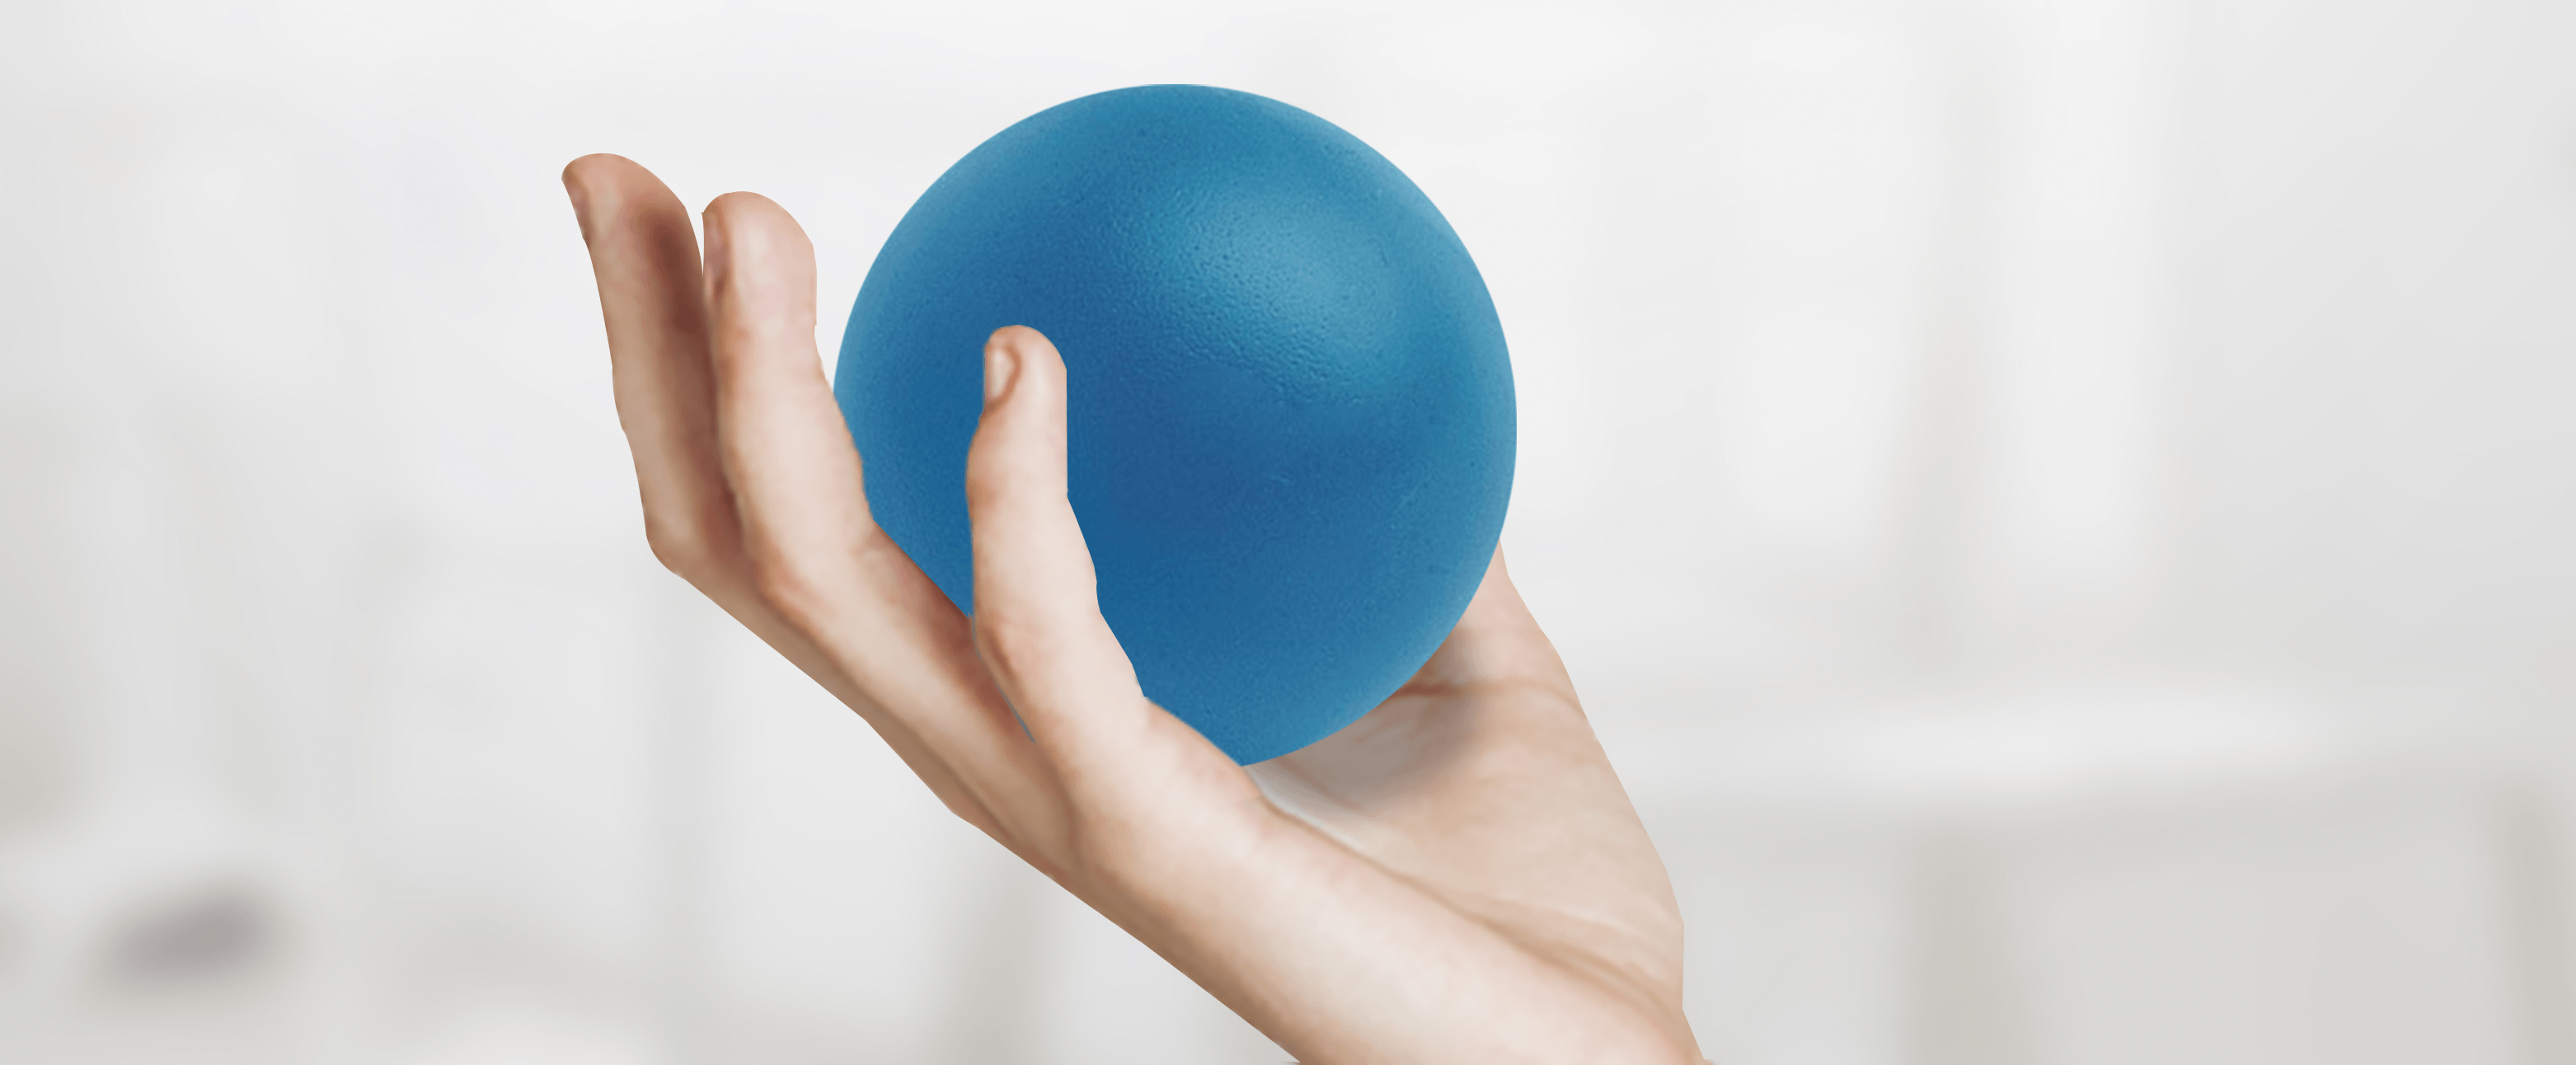 Anti-stress boll